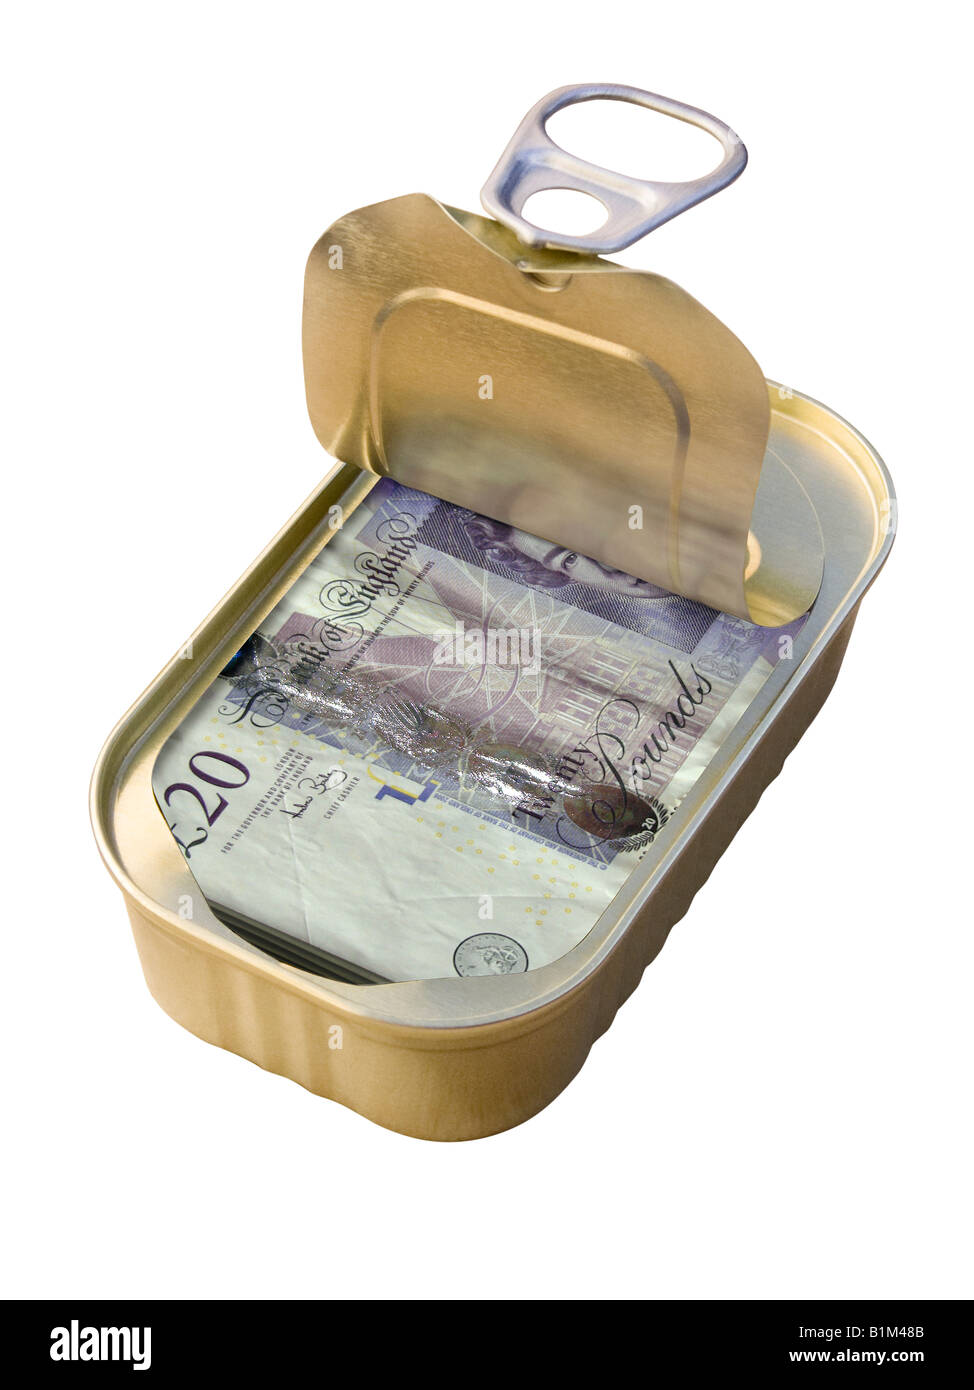 Ring Pull Tin containing £20 notes on white background - Concept - Stock Image